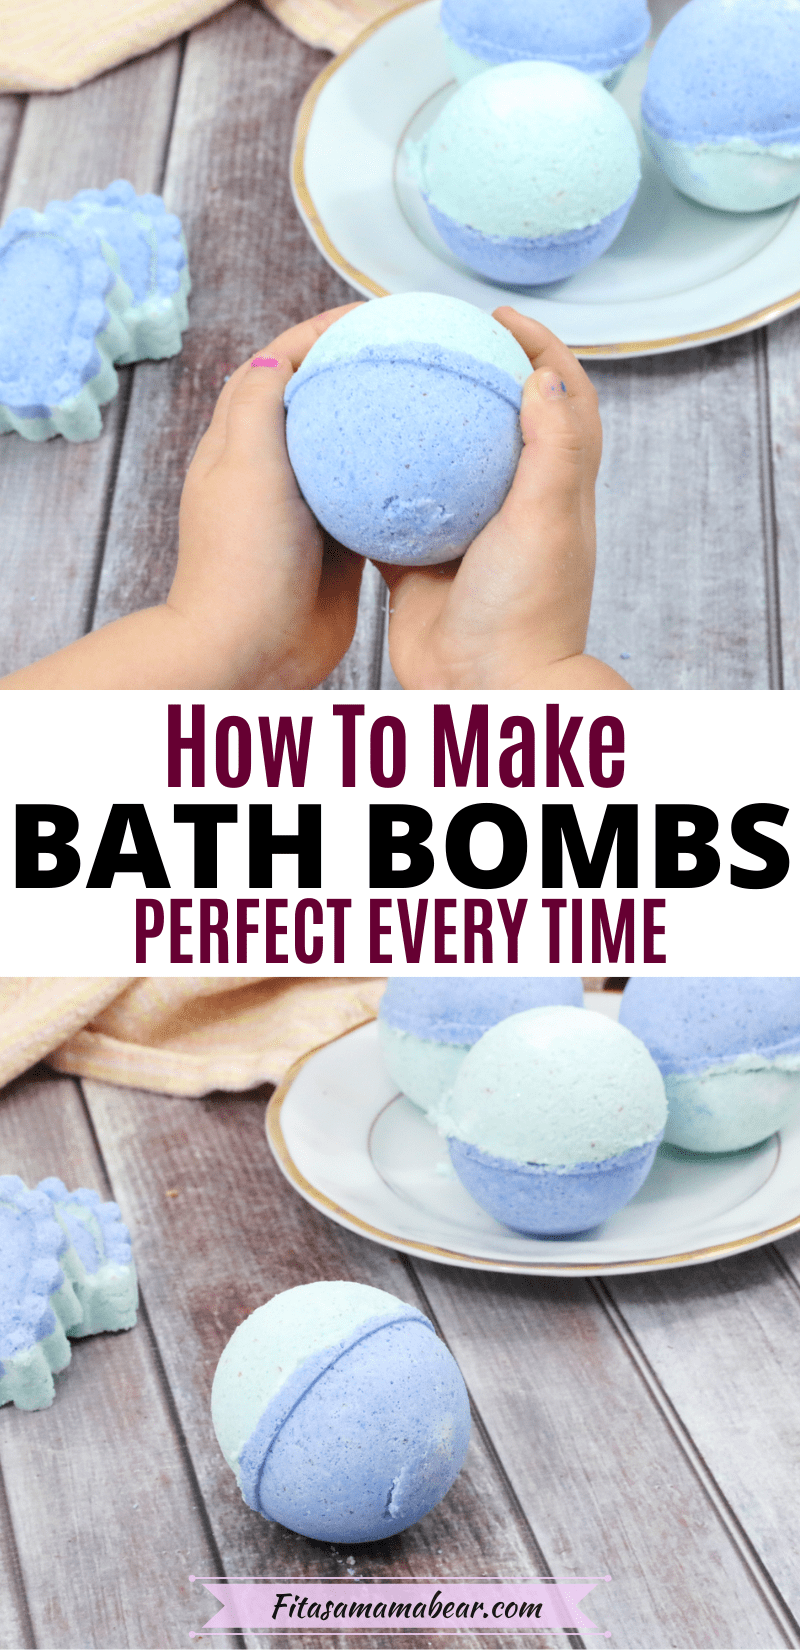 Pinterest image with text: two images the top of kids hands holding a blue and green bath bomb the bottom of bath bombs on a white plate with one in front